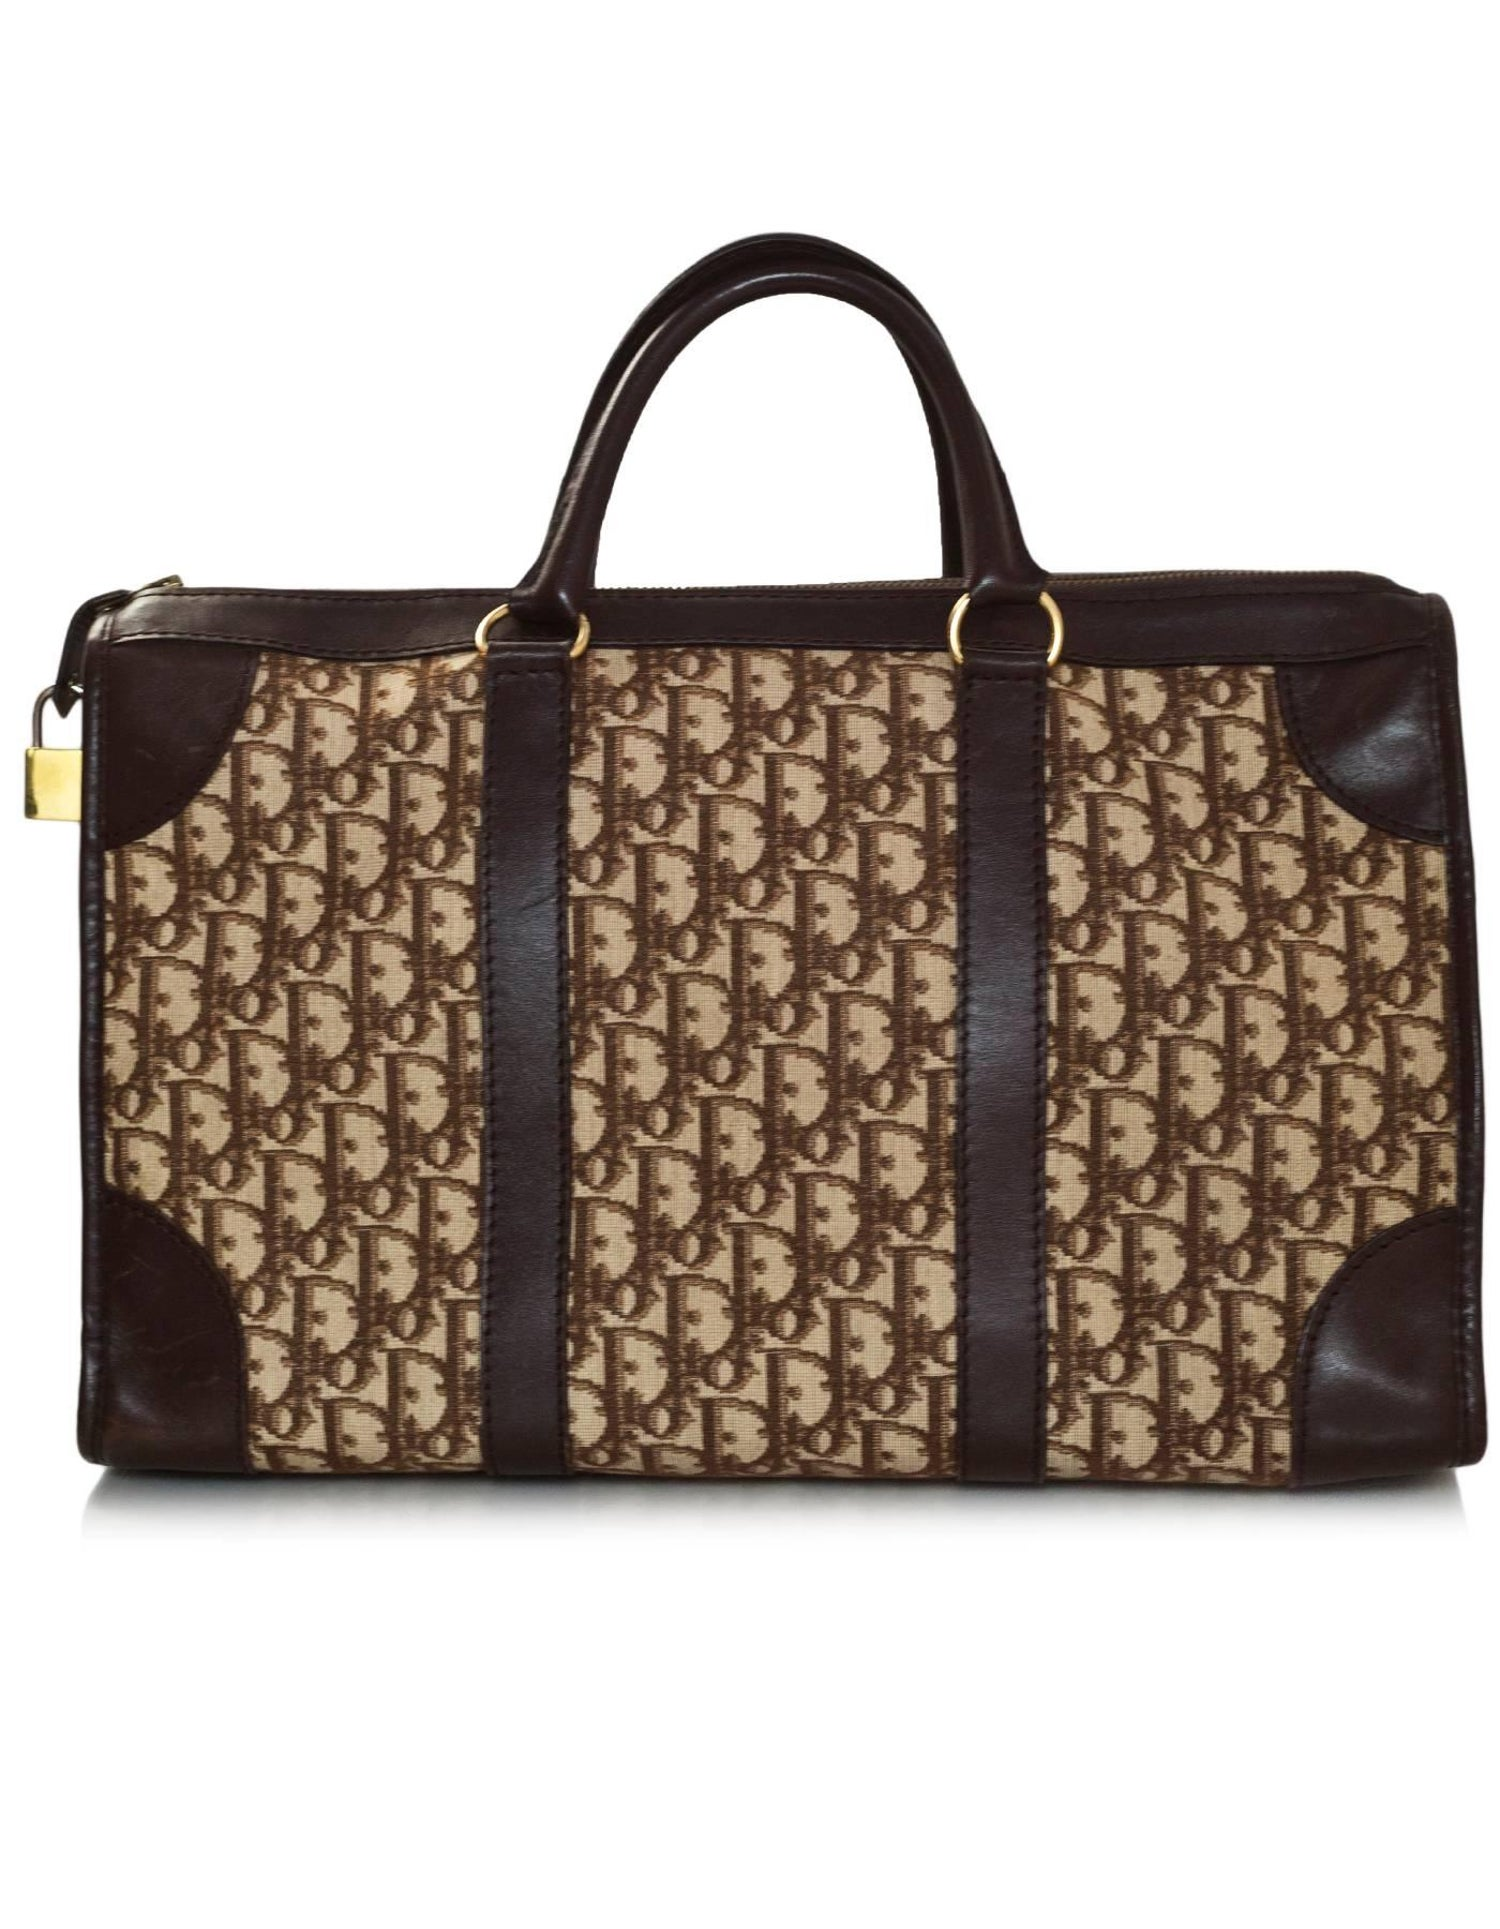 Christian Dior Vintage Brown Monogram Diorissimo Large Top Handle Boston  Bag For Sale at 1stdibs 7c79d451a7a1f